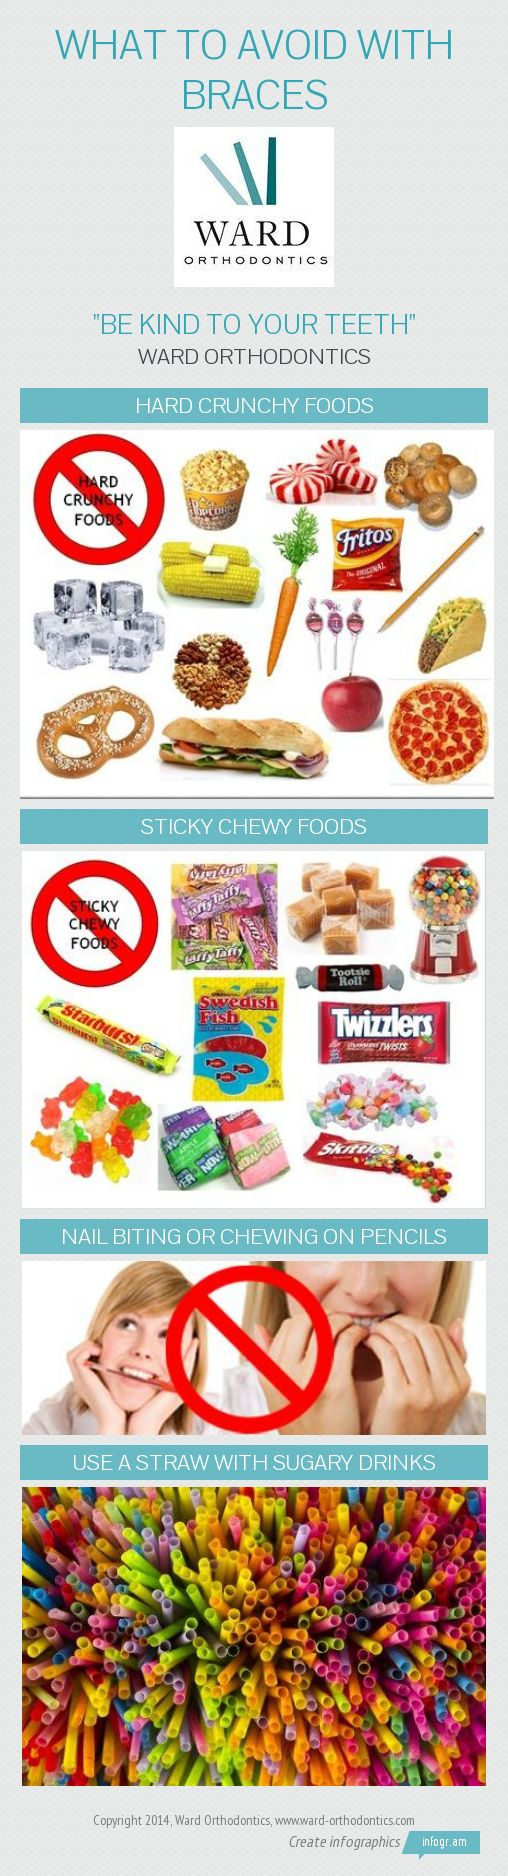 Do And Dont S To To Foods With Braces